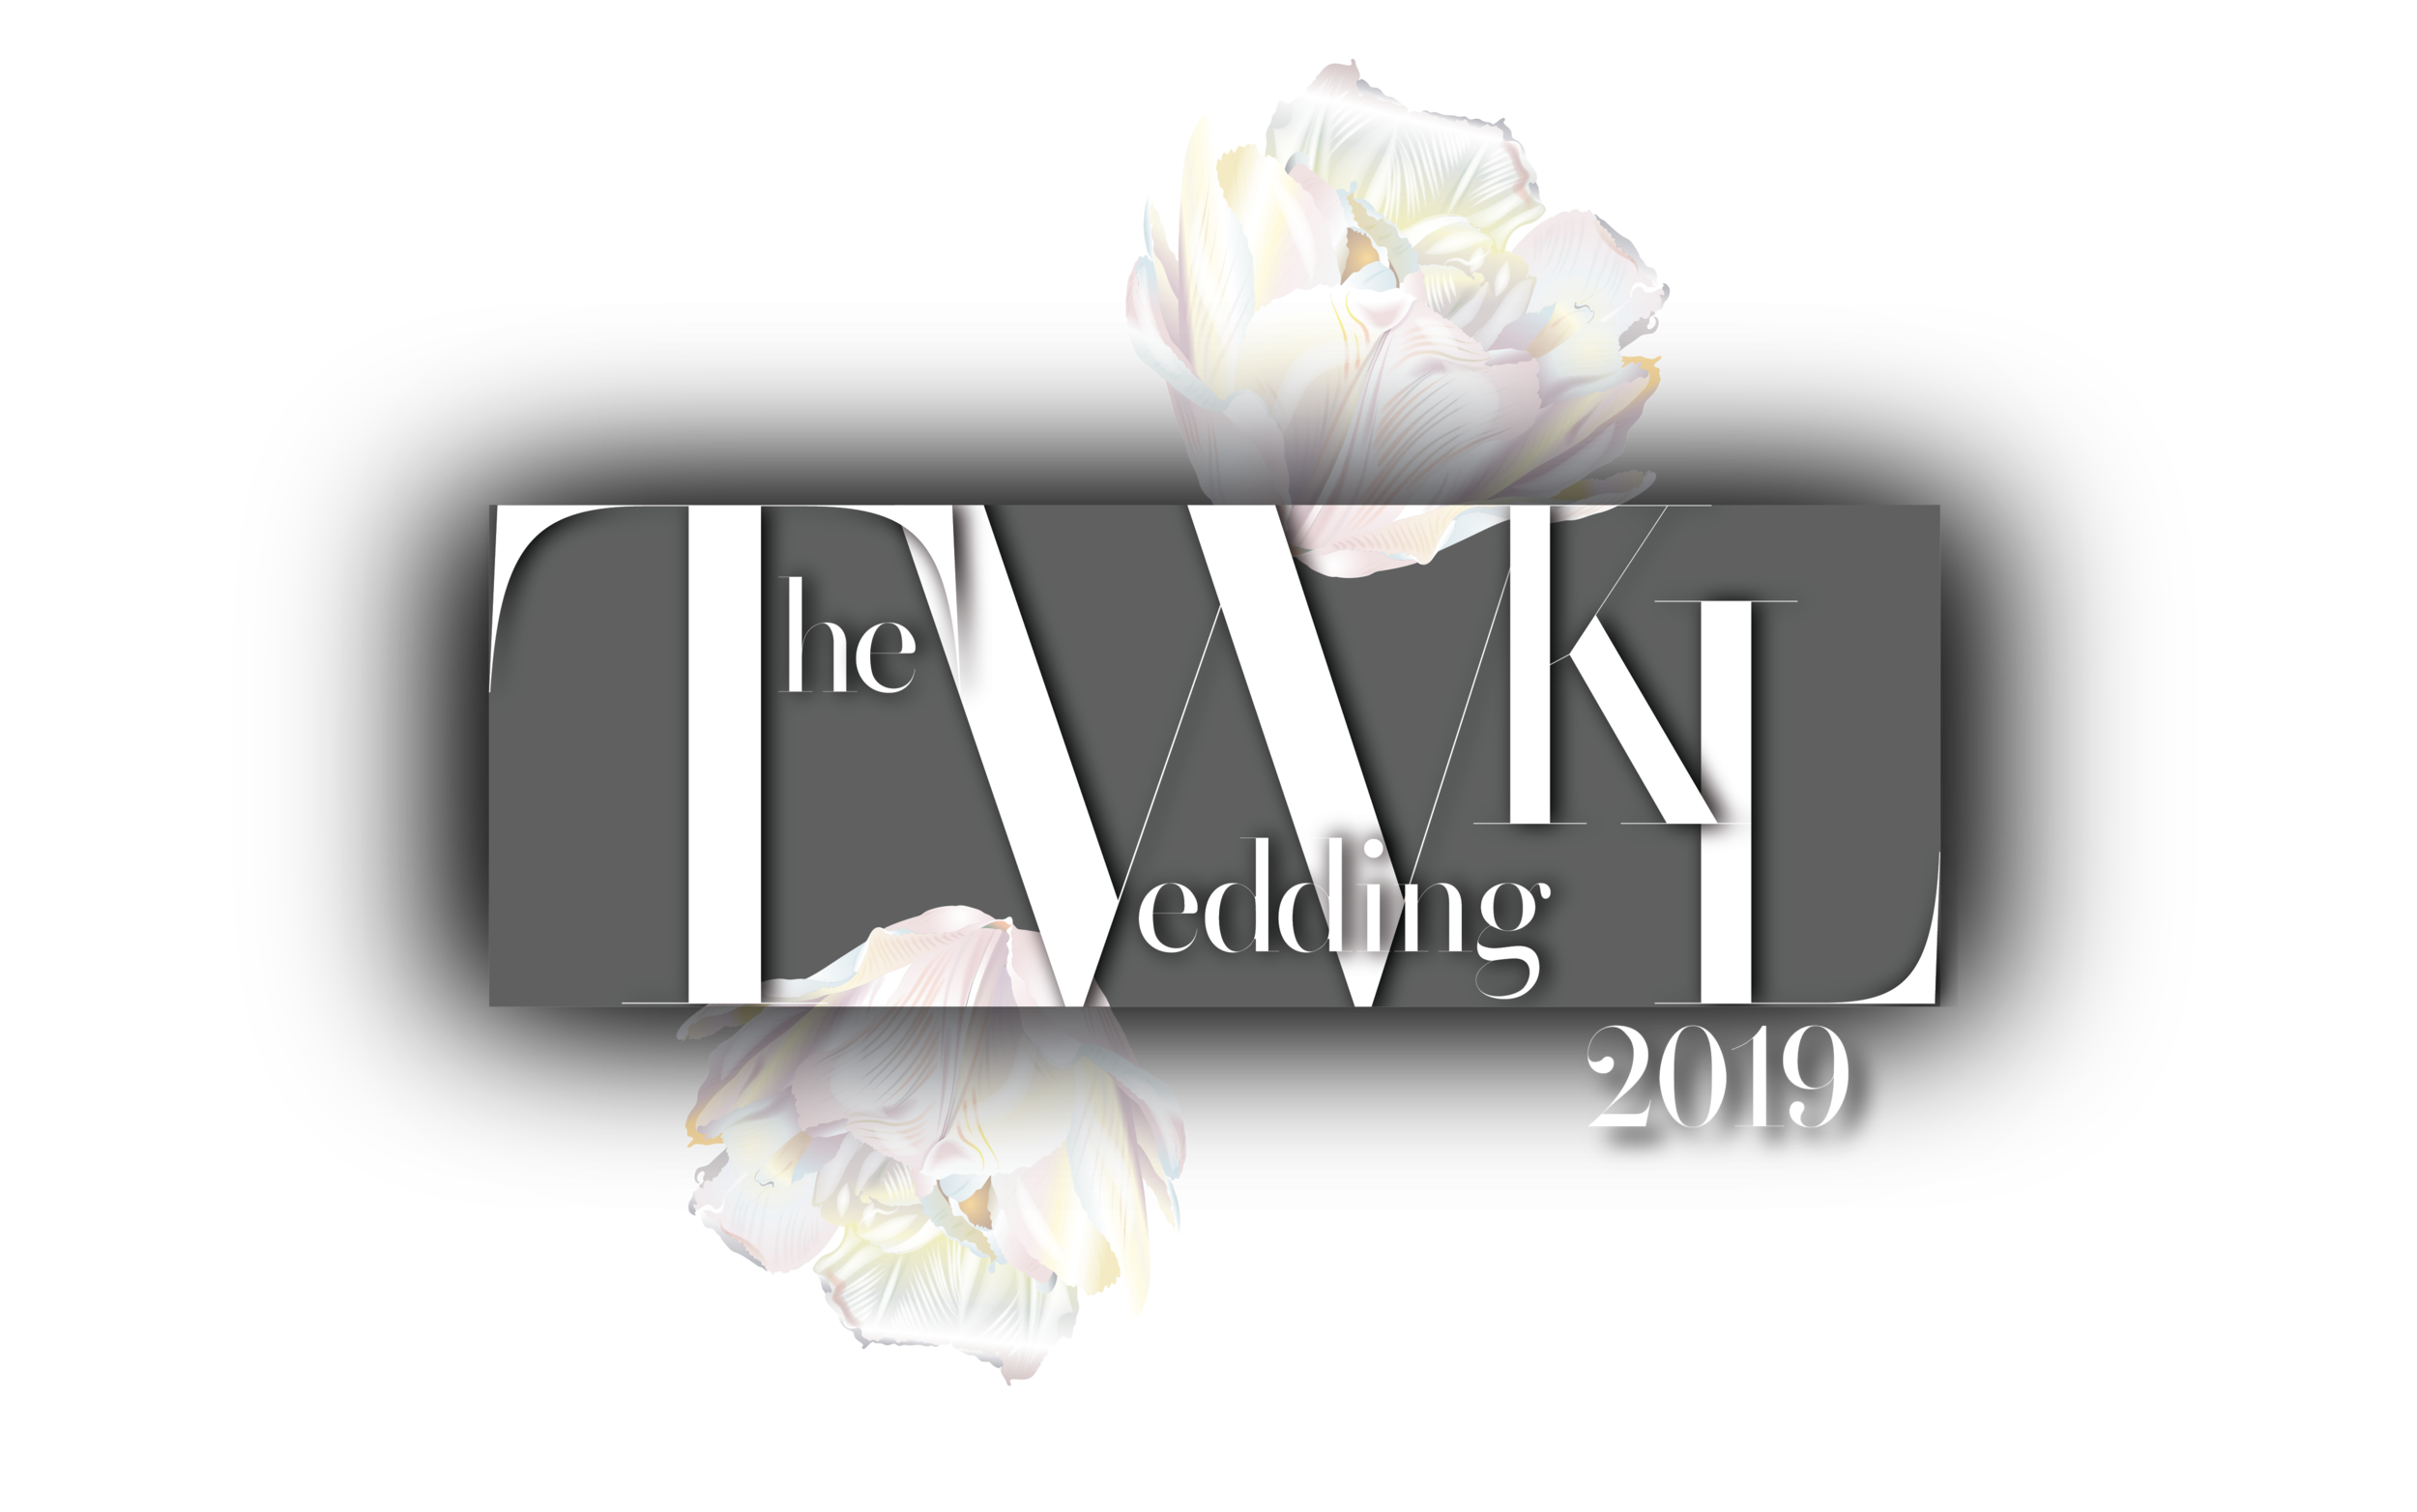 The_Wedding_KL_NEW-logo-2c019-01.png